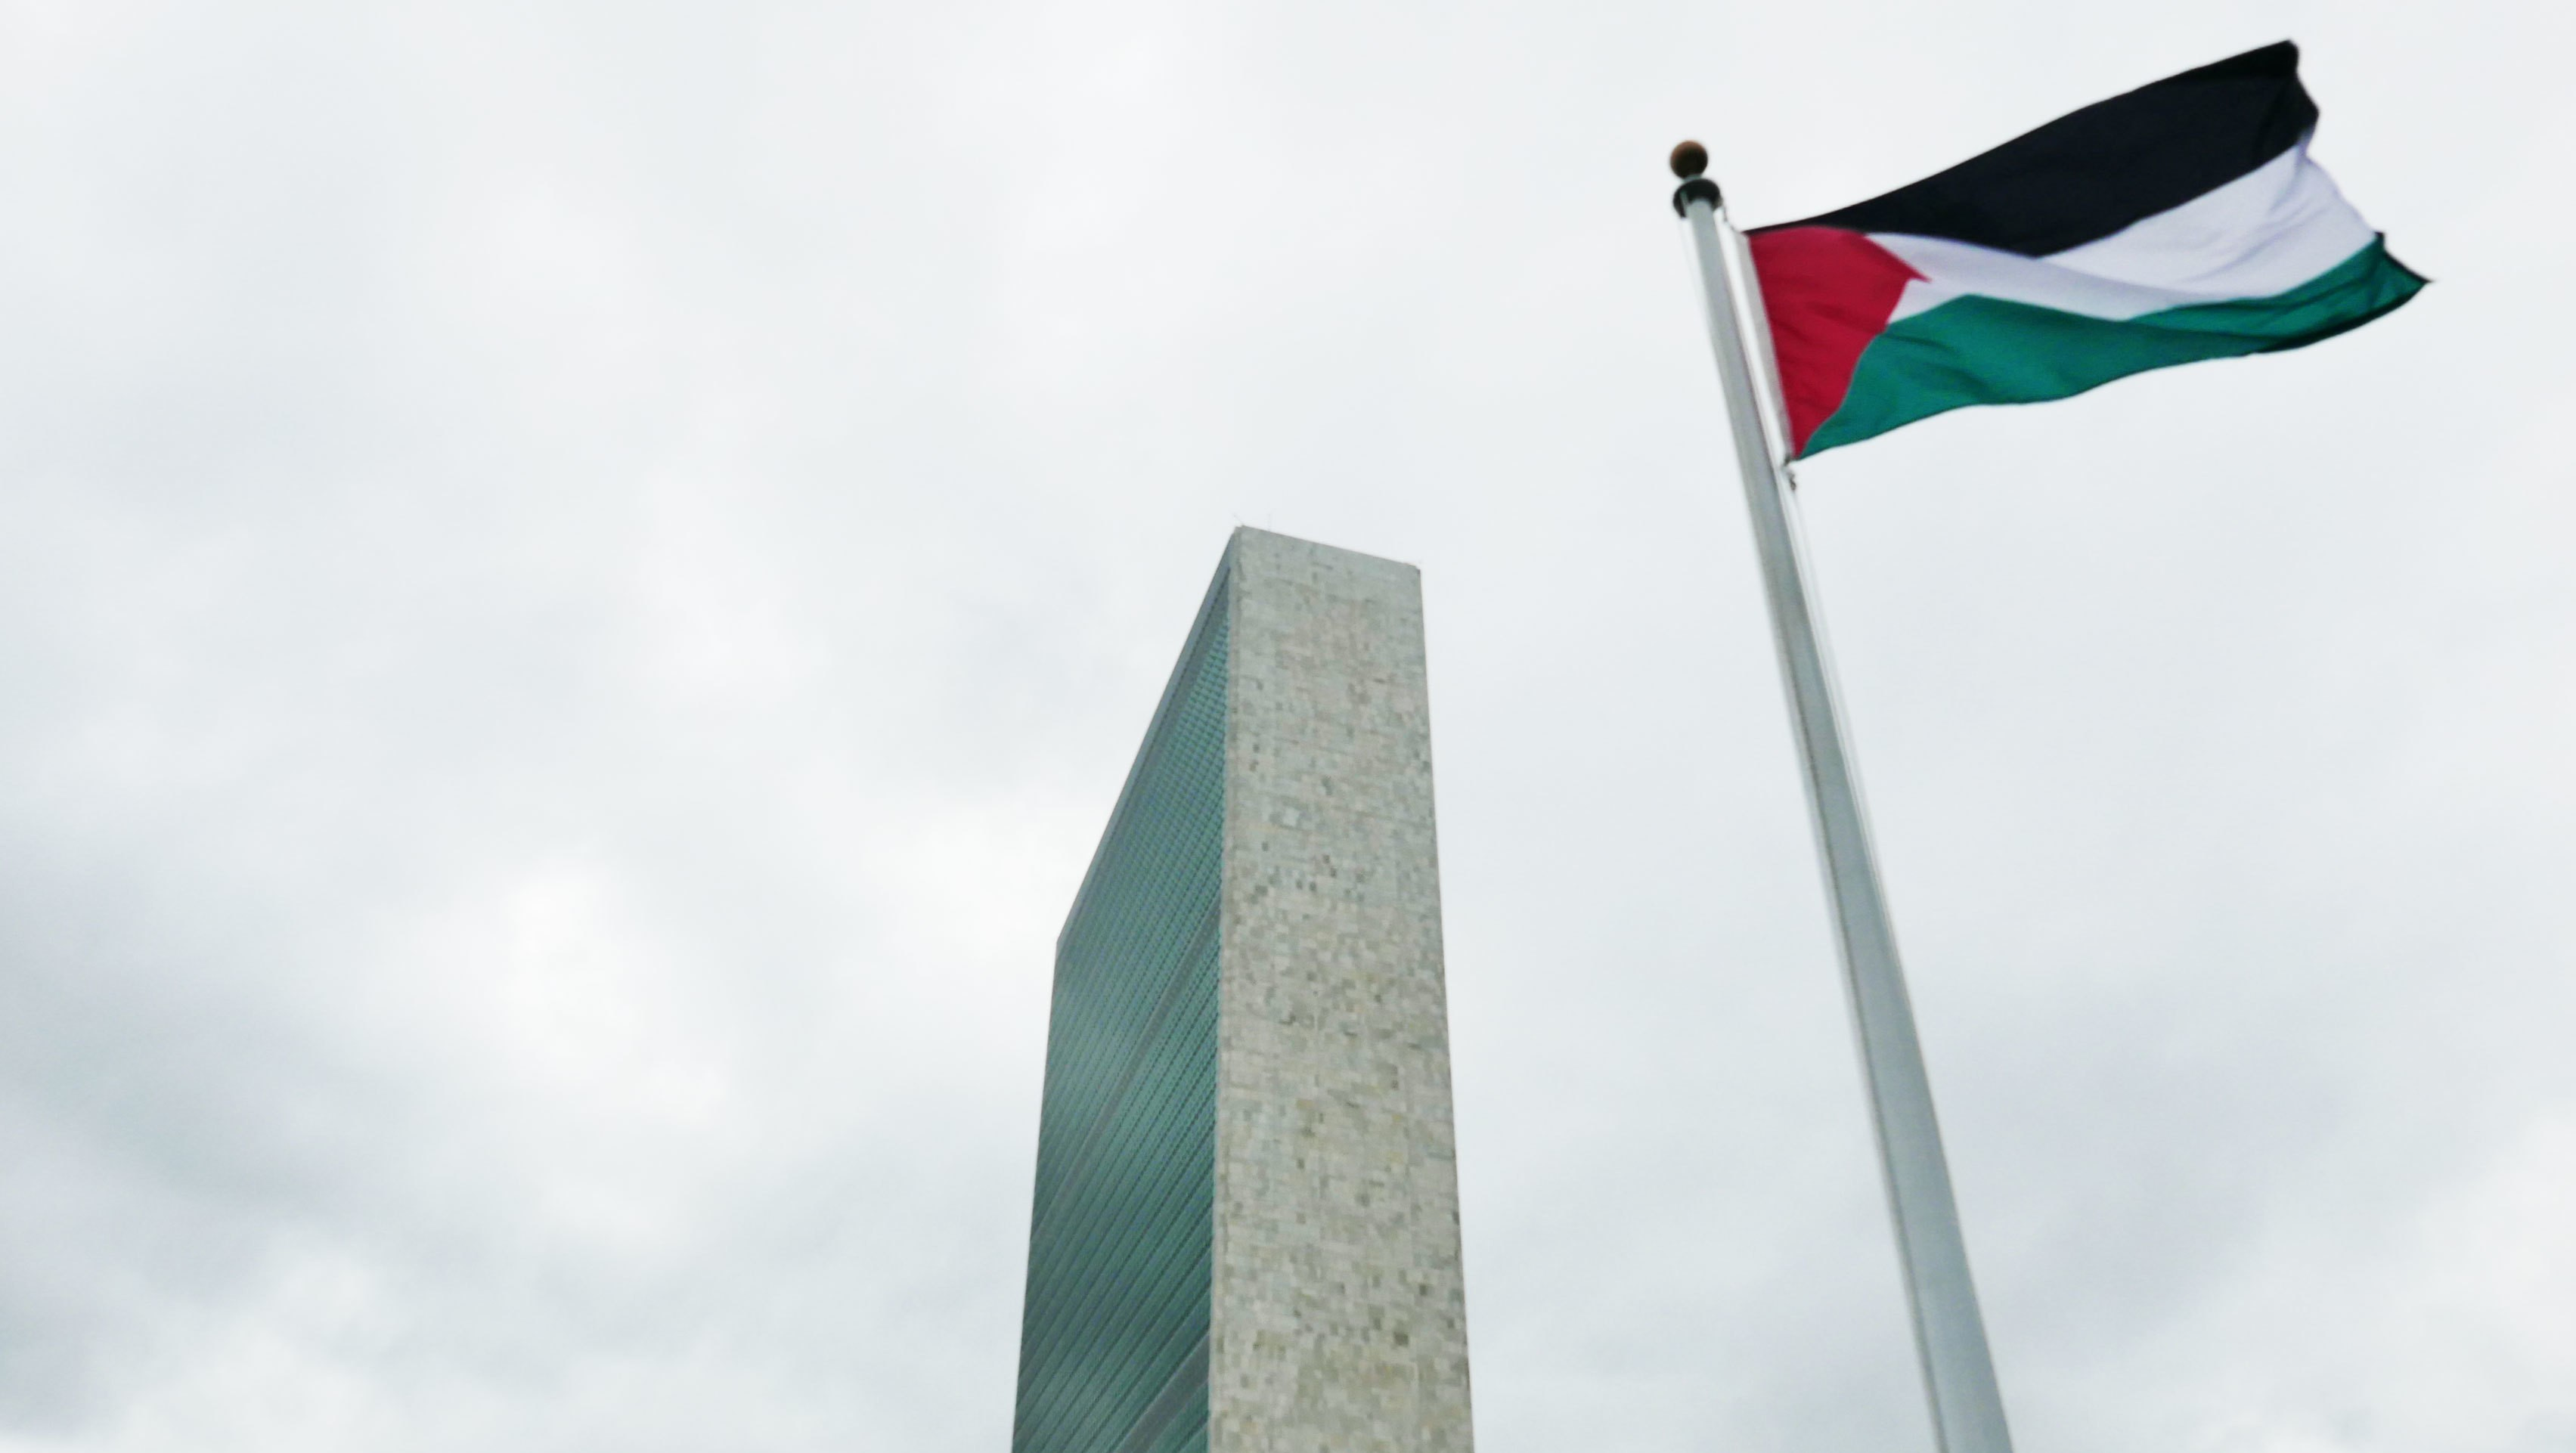 an analysis of the oslo accords Which level of analysis describes the argument that the oslo accords failed due to the diplomatic inflexibility of yasser arafat of the palestine liberation organization the individual level of analysis which level of analysis describes the argument that the oslo accords failed due to the us.